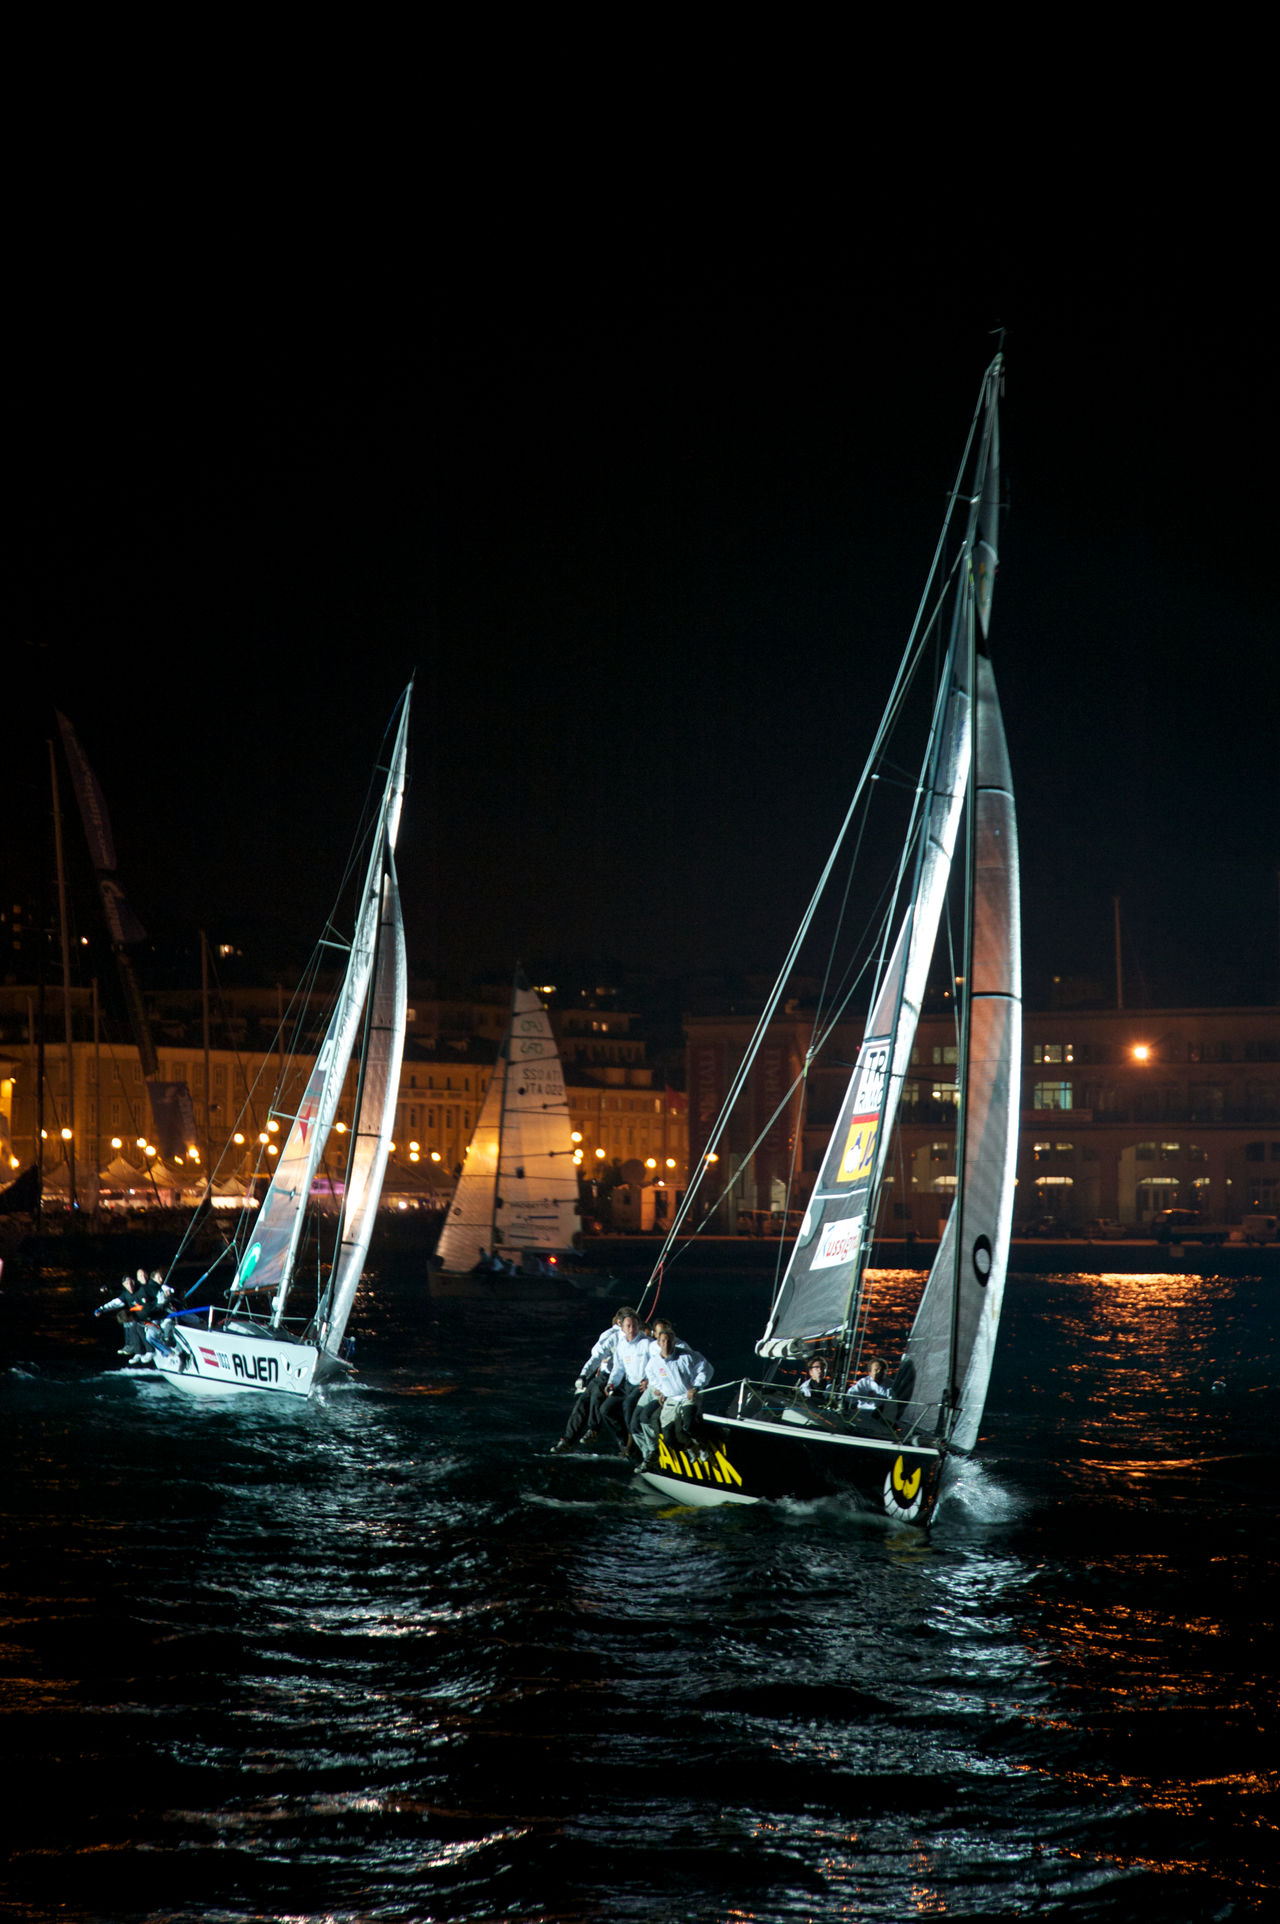 sail boats during the regata Barcolana at night Barcolana 2010 Competition Competitive Sport Nautical Vessel Night Outdoors Regatta Sailboat Sailing Sailing Ship Sailor Sea Sports Race Trieste TriesteSocial Water Travel Pictures Summertime Waterfrontview Welcome To Black